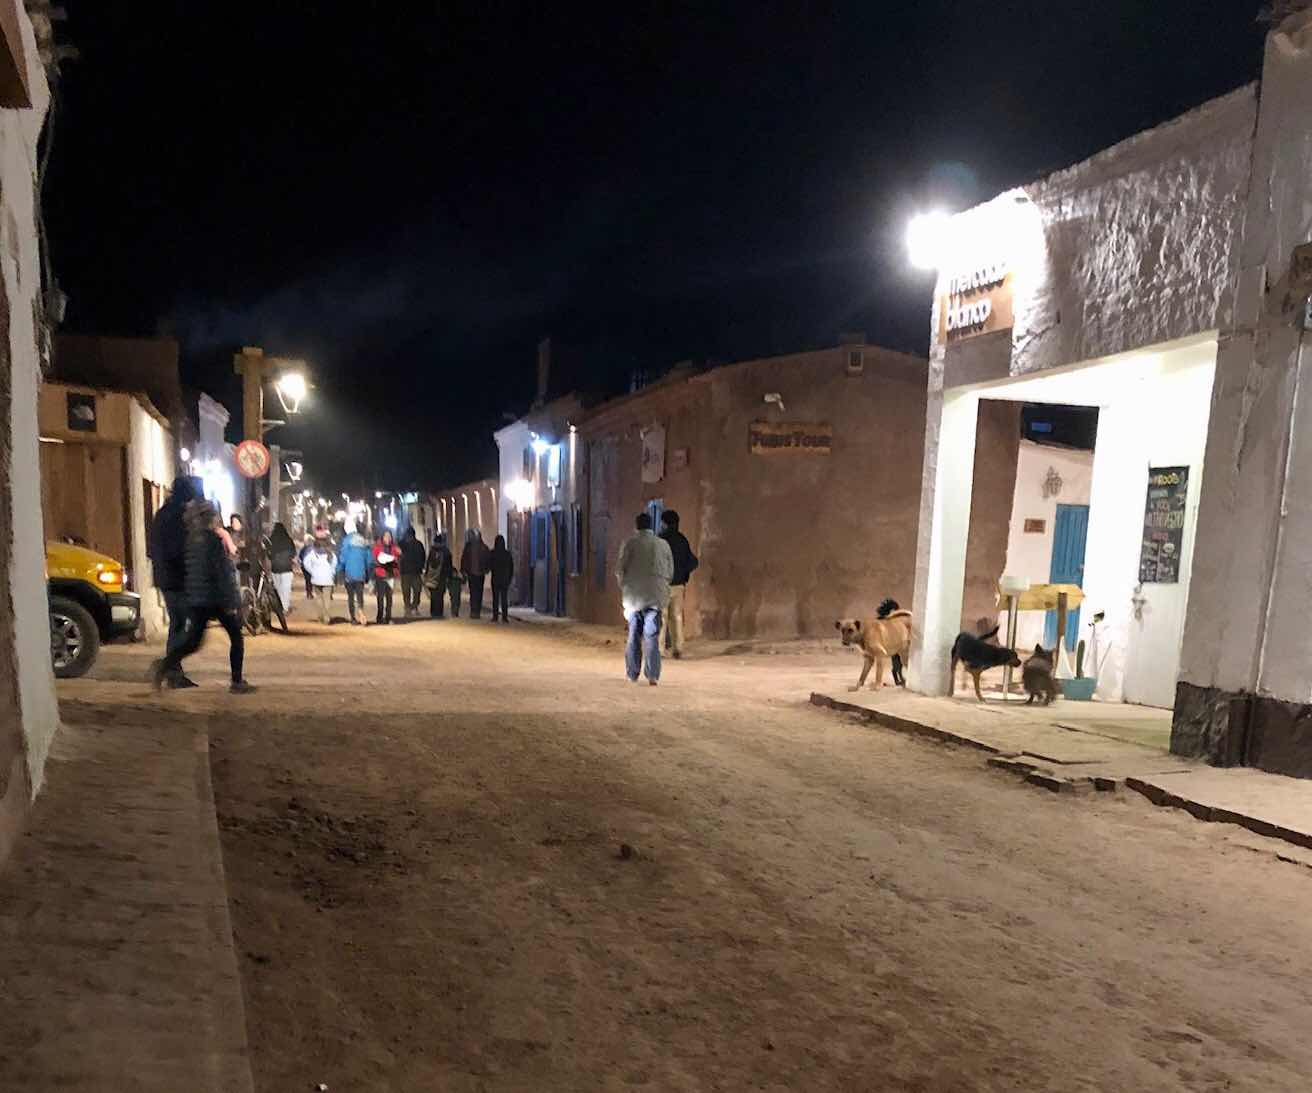 Walking the dirt packed streets, with ever present stray dogs, in San Pedro de Atacama (Source: Palmia Observatory)